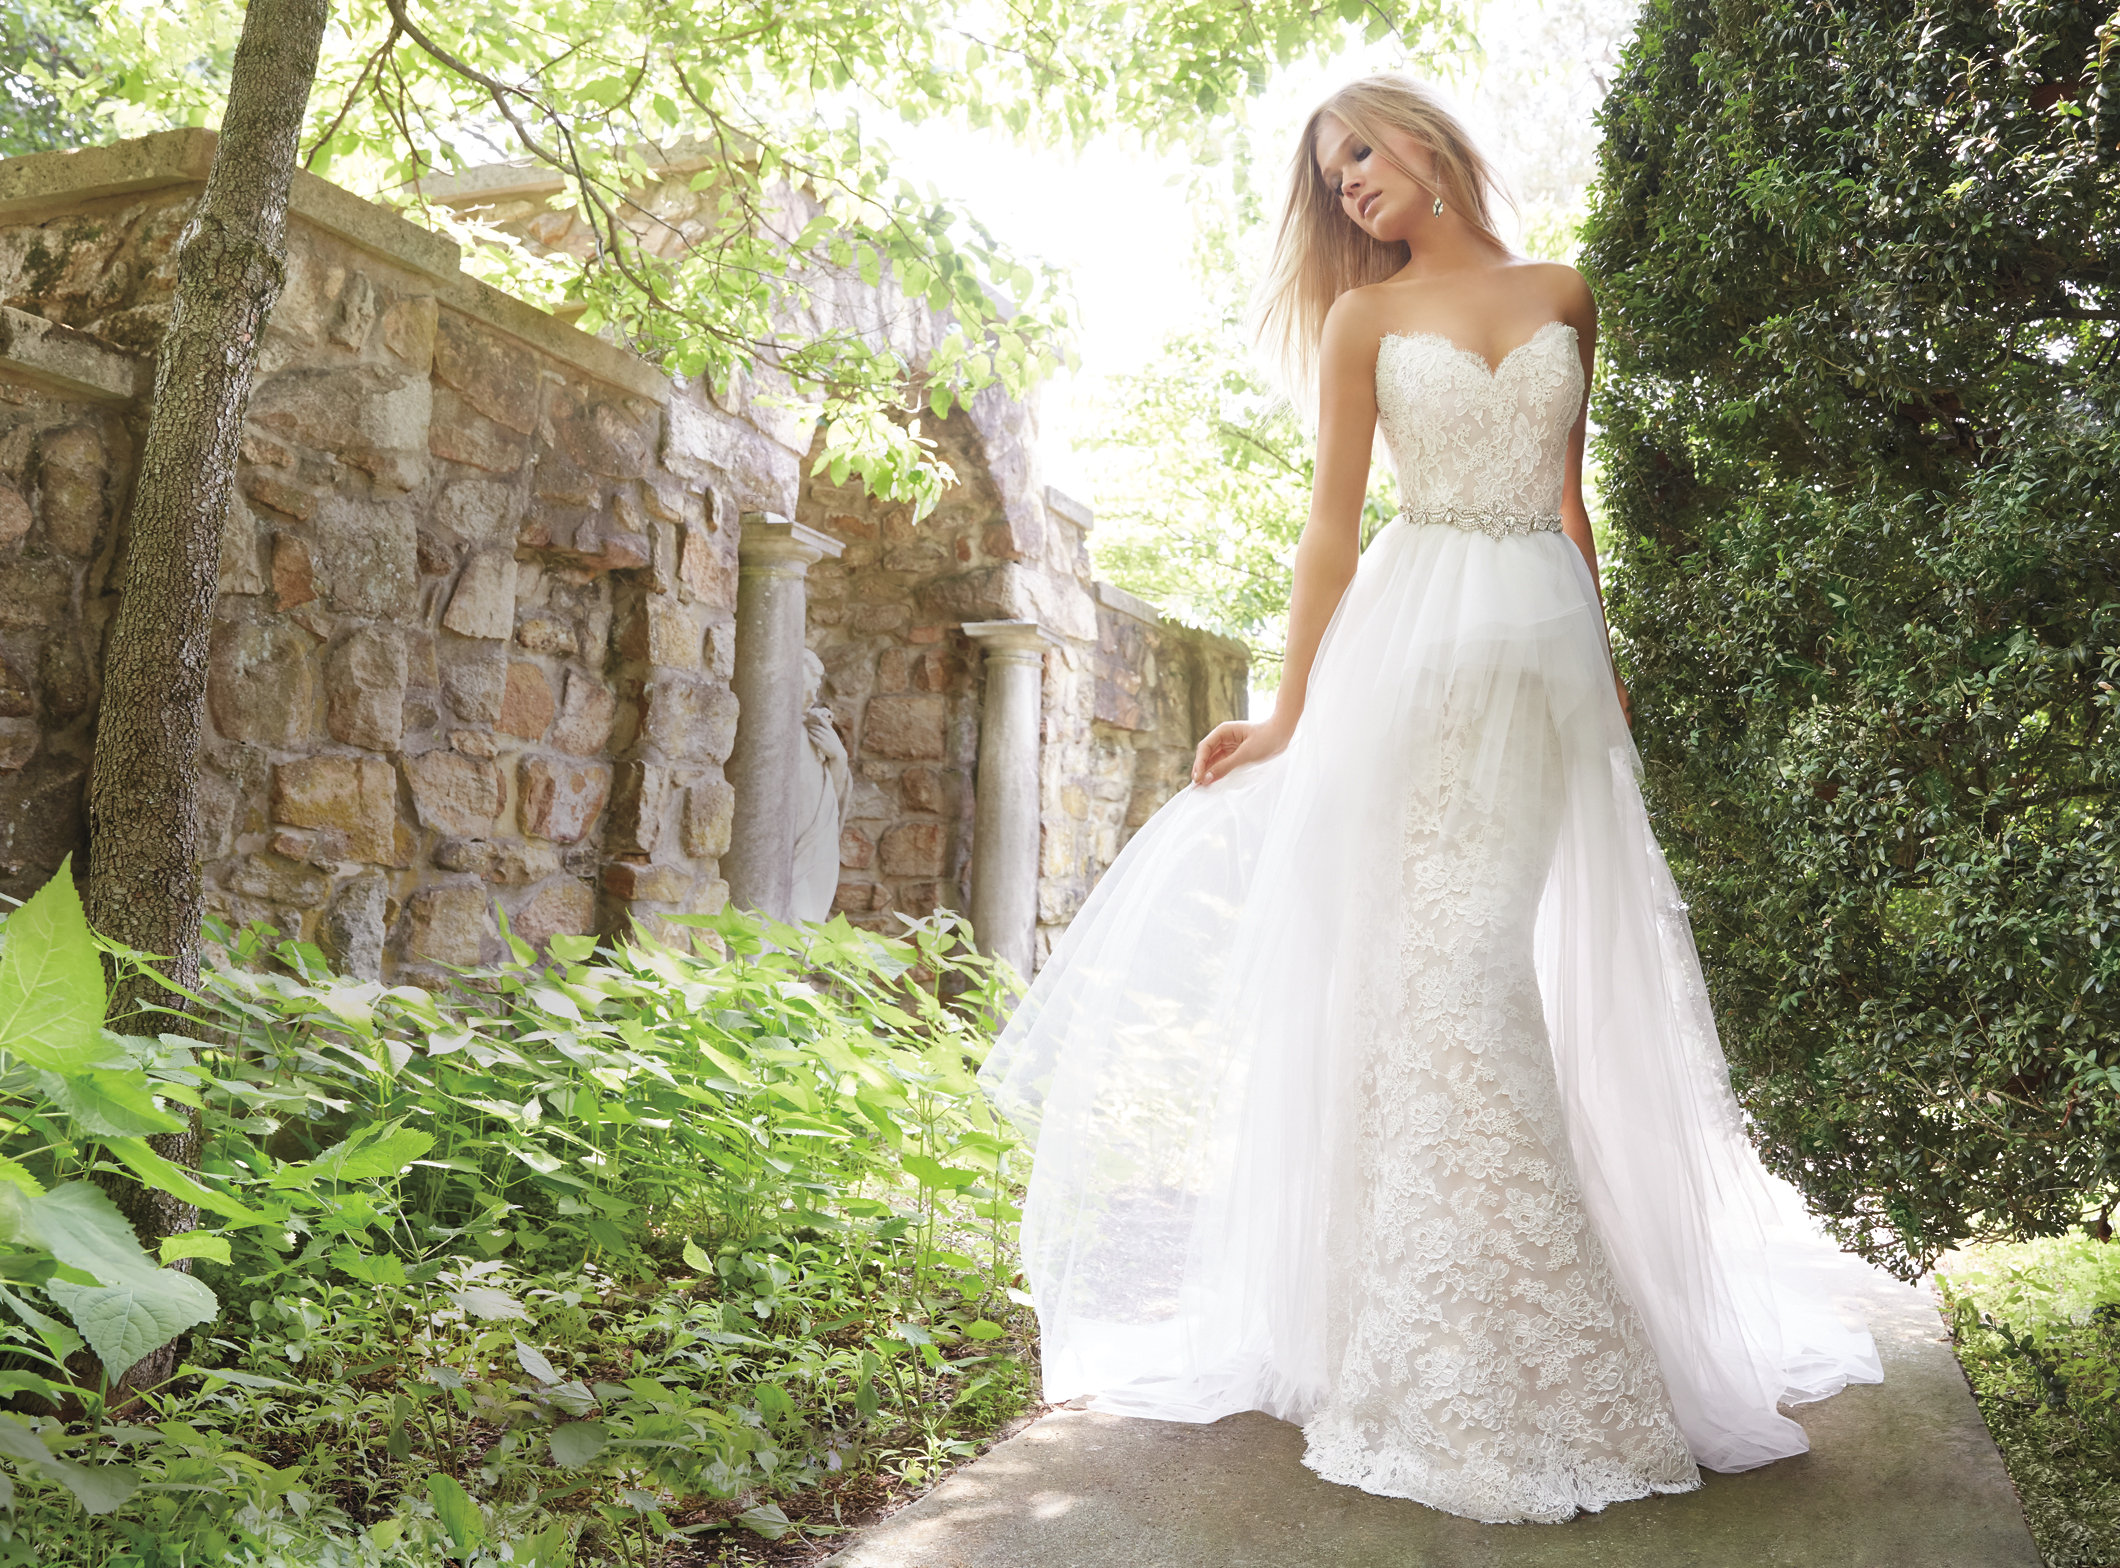 Bridal gowns and wedding dresses by jlm couture style 9553 style 9553 ombrellifo Choice Image